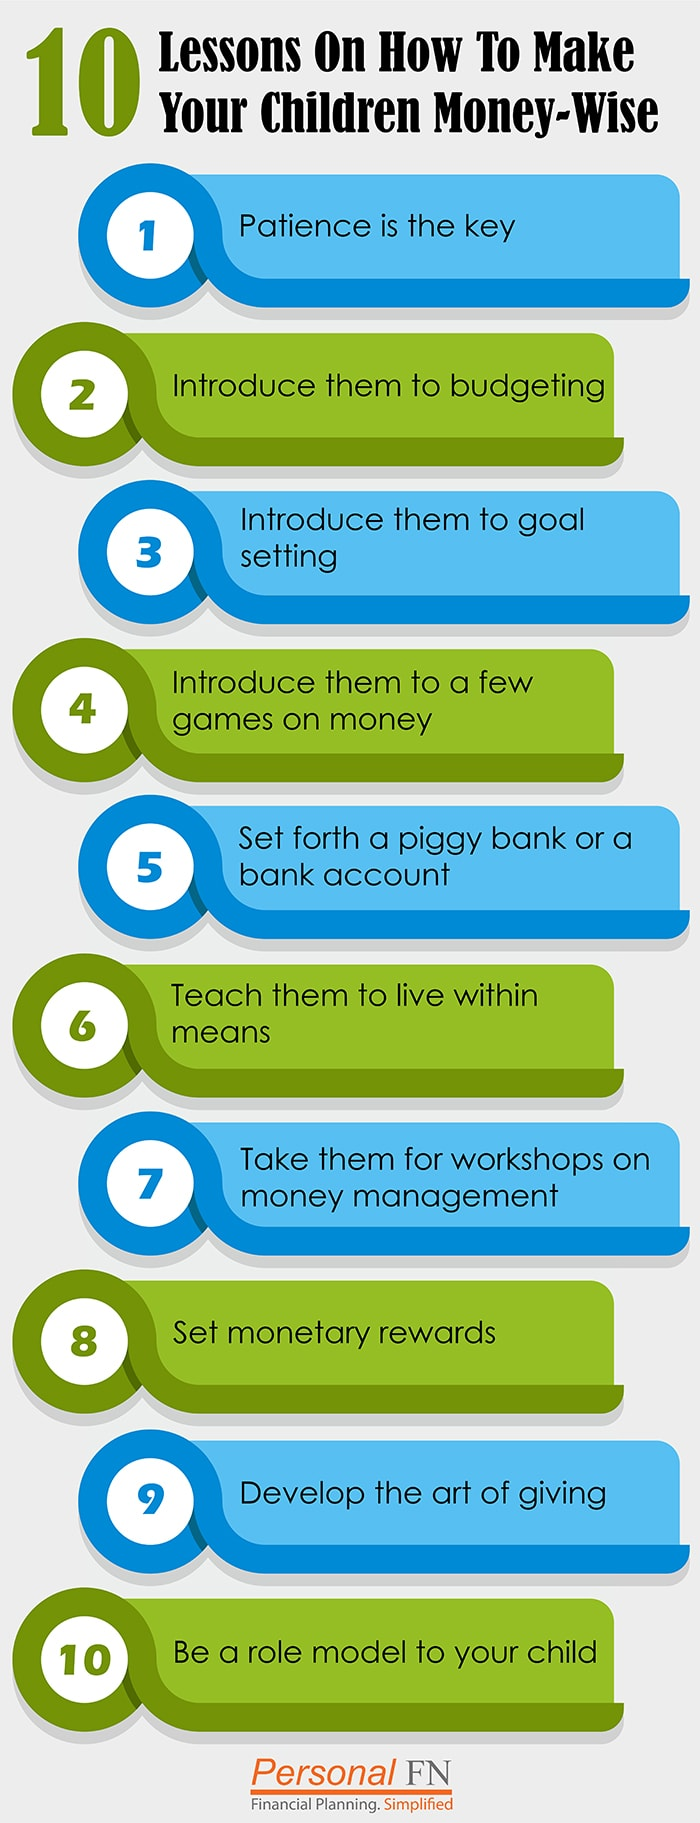 10_lesson_on_how_to_make_your_children_money_wise